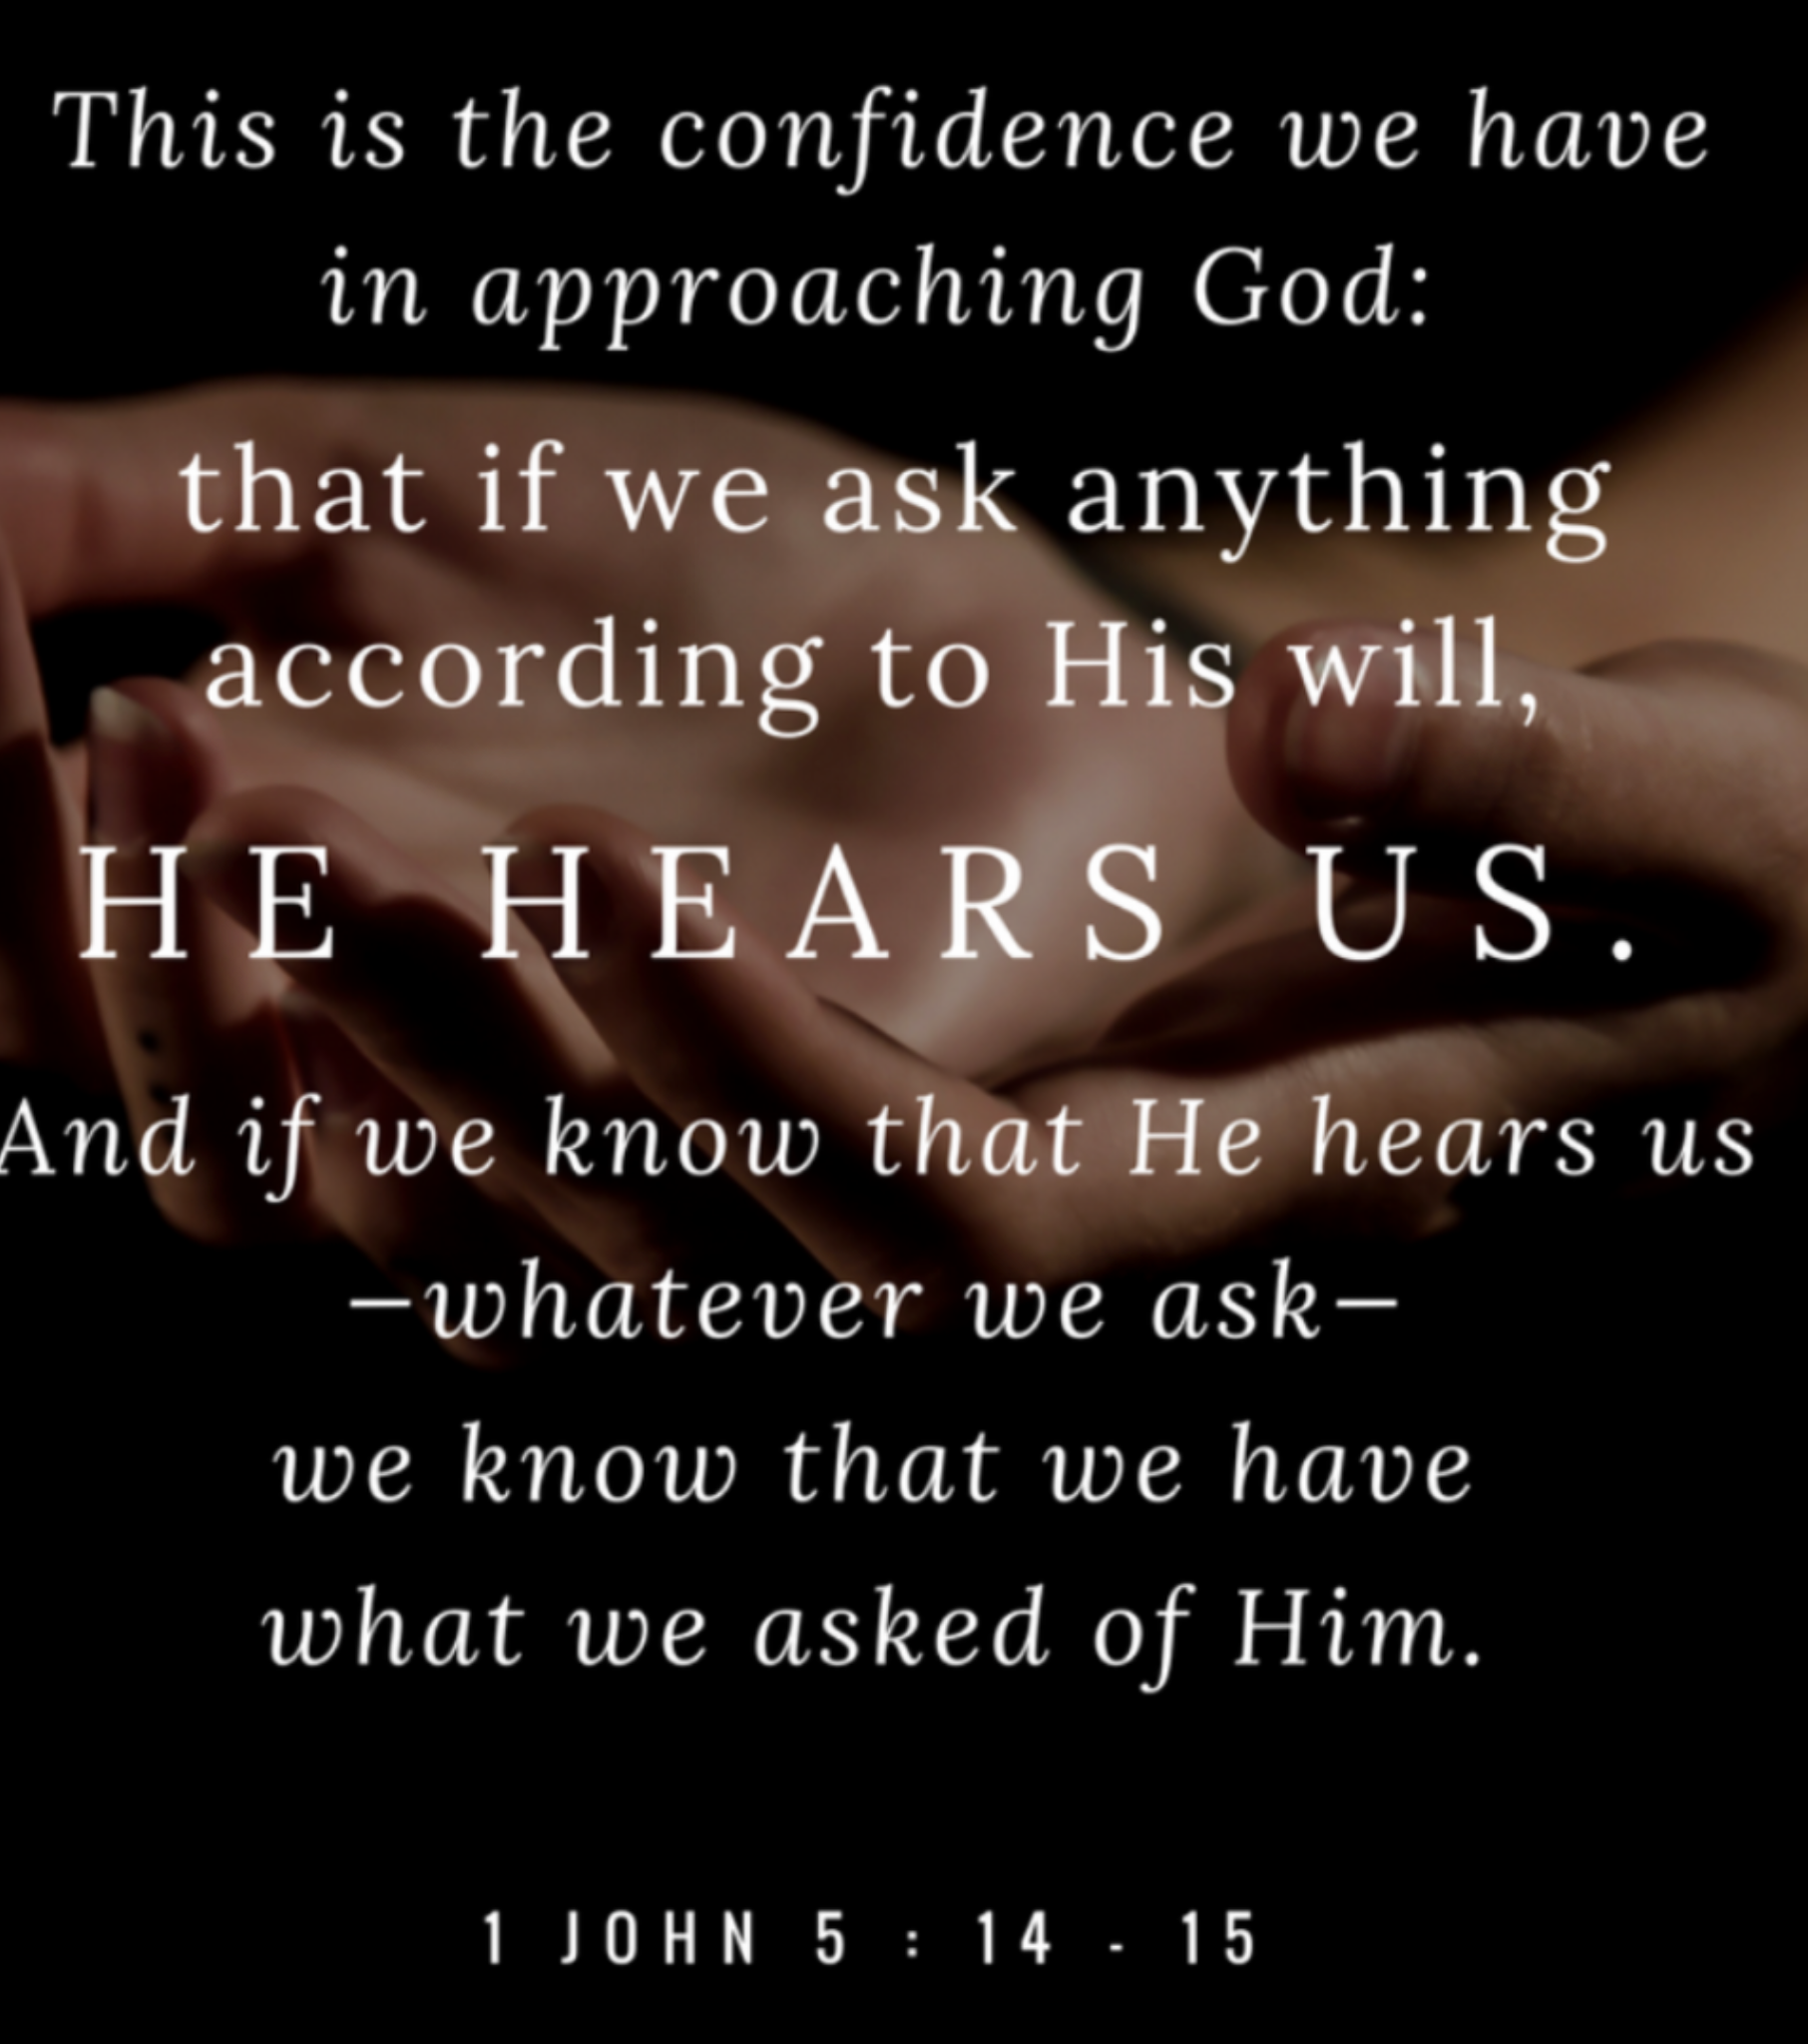 God is answering!